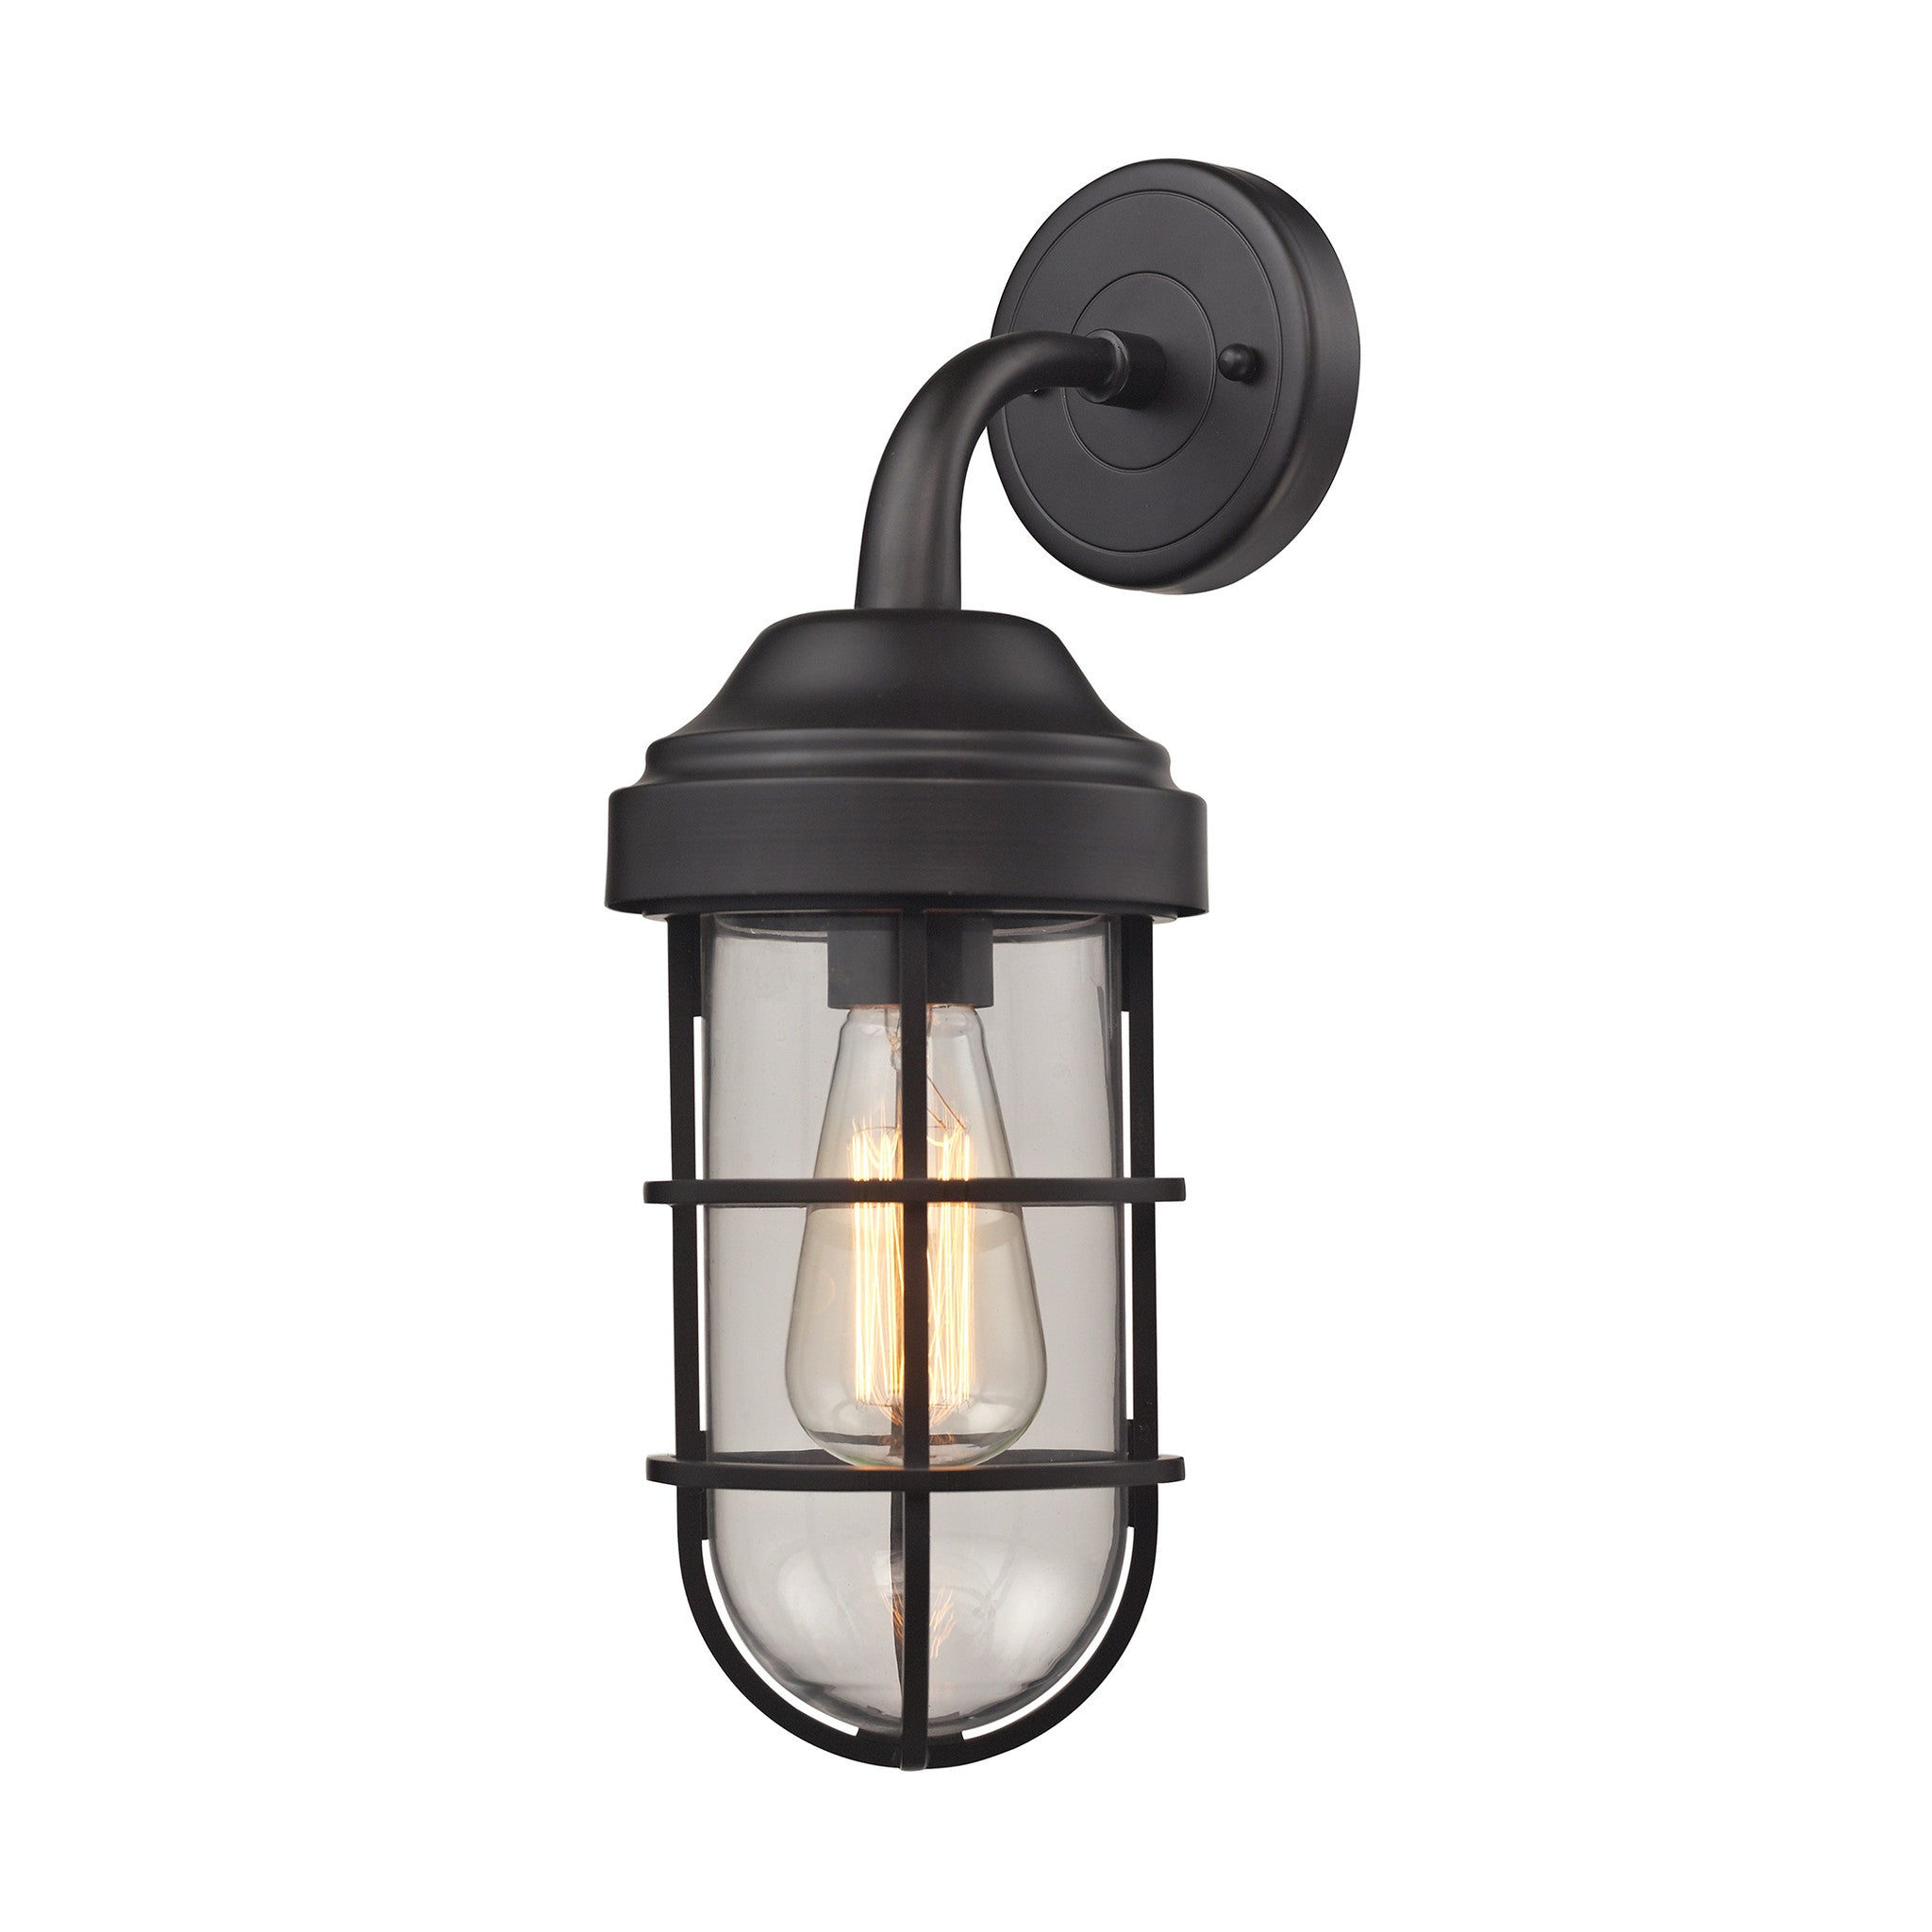 Seaport 1 Light Wall Sconce in Oil Rubbed Bronze by Elk Lighting 66365-1